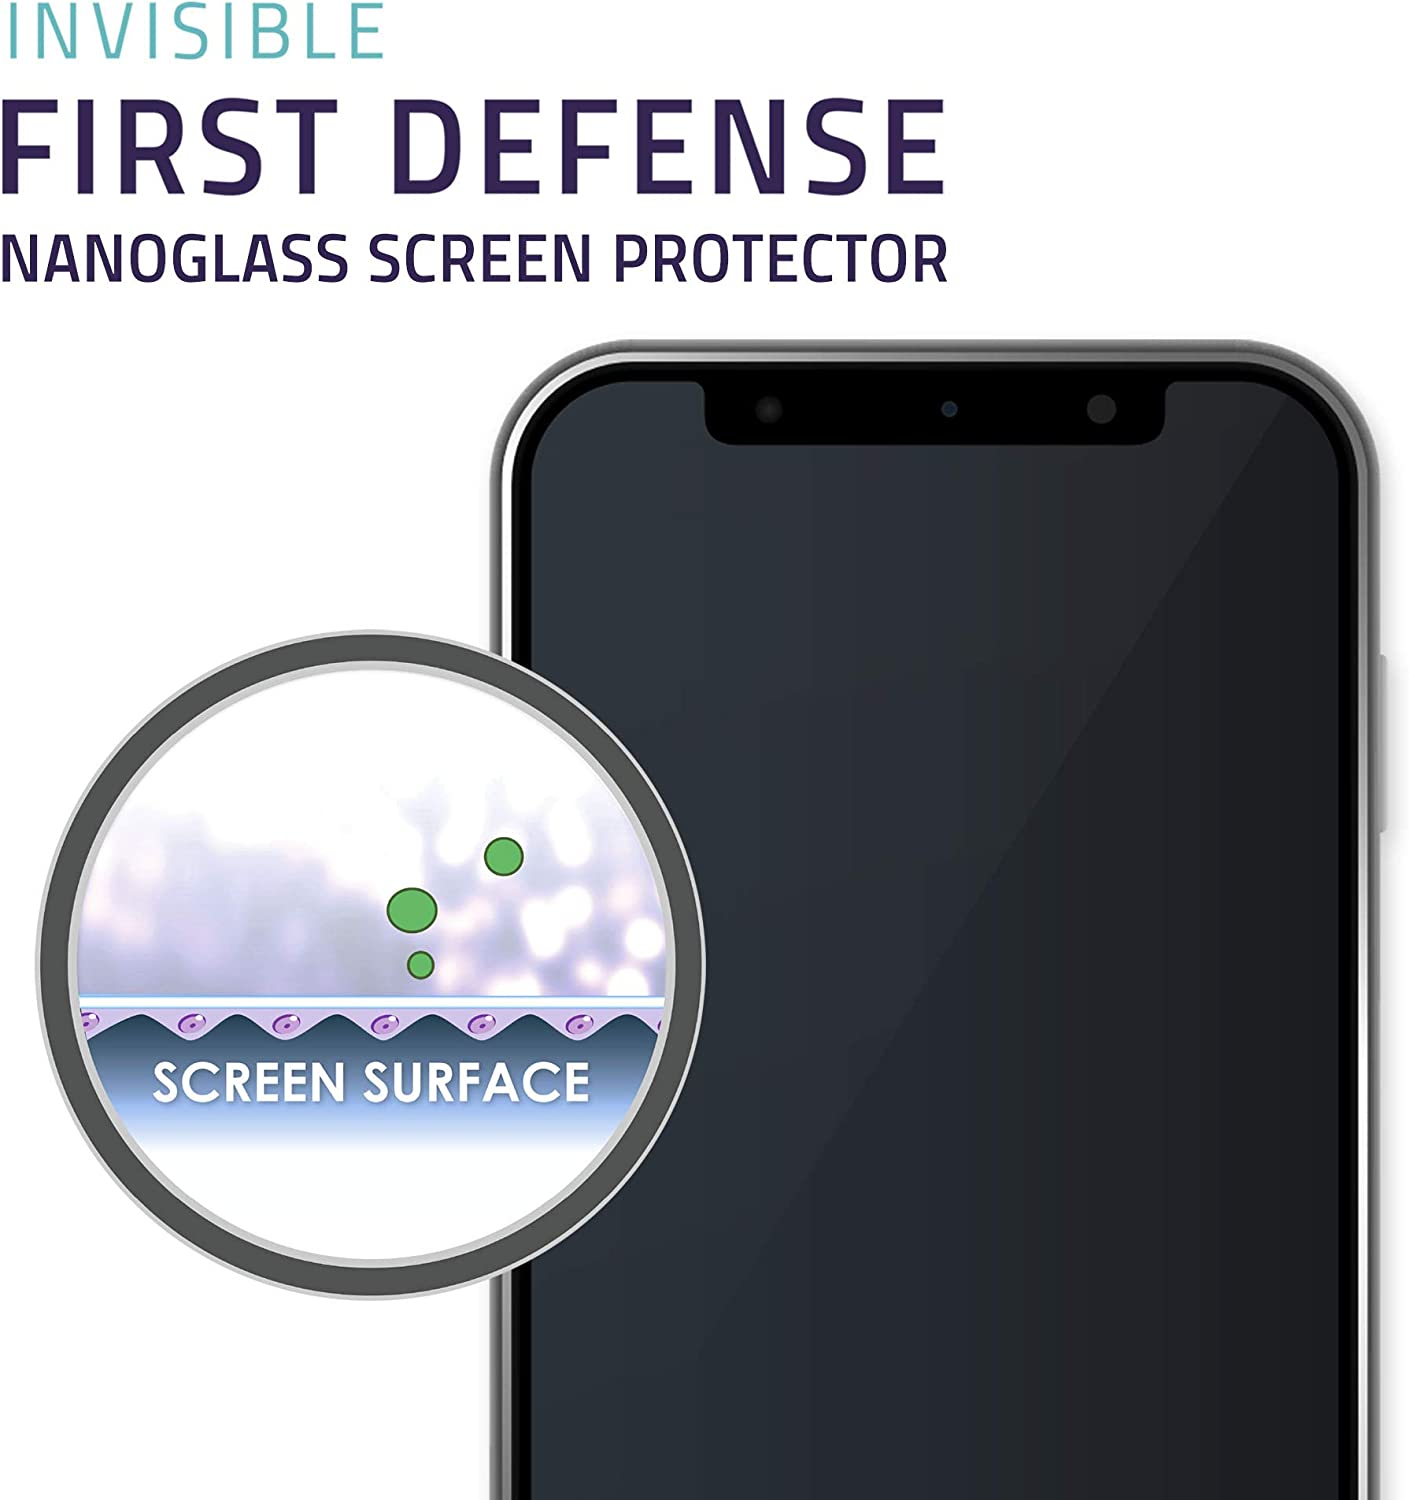 QMADIX Invisible First Defense Nano Liquid Screen Protector [Scratch Resistant] for All iPhone, iPad, Apple Watch, Samsung Phones - Extreme Liquid ...